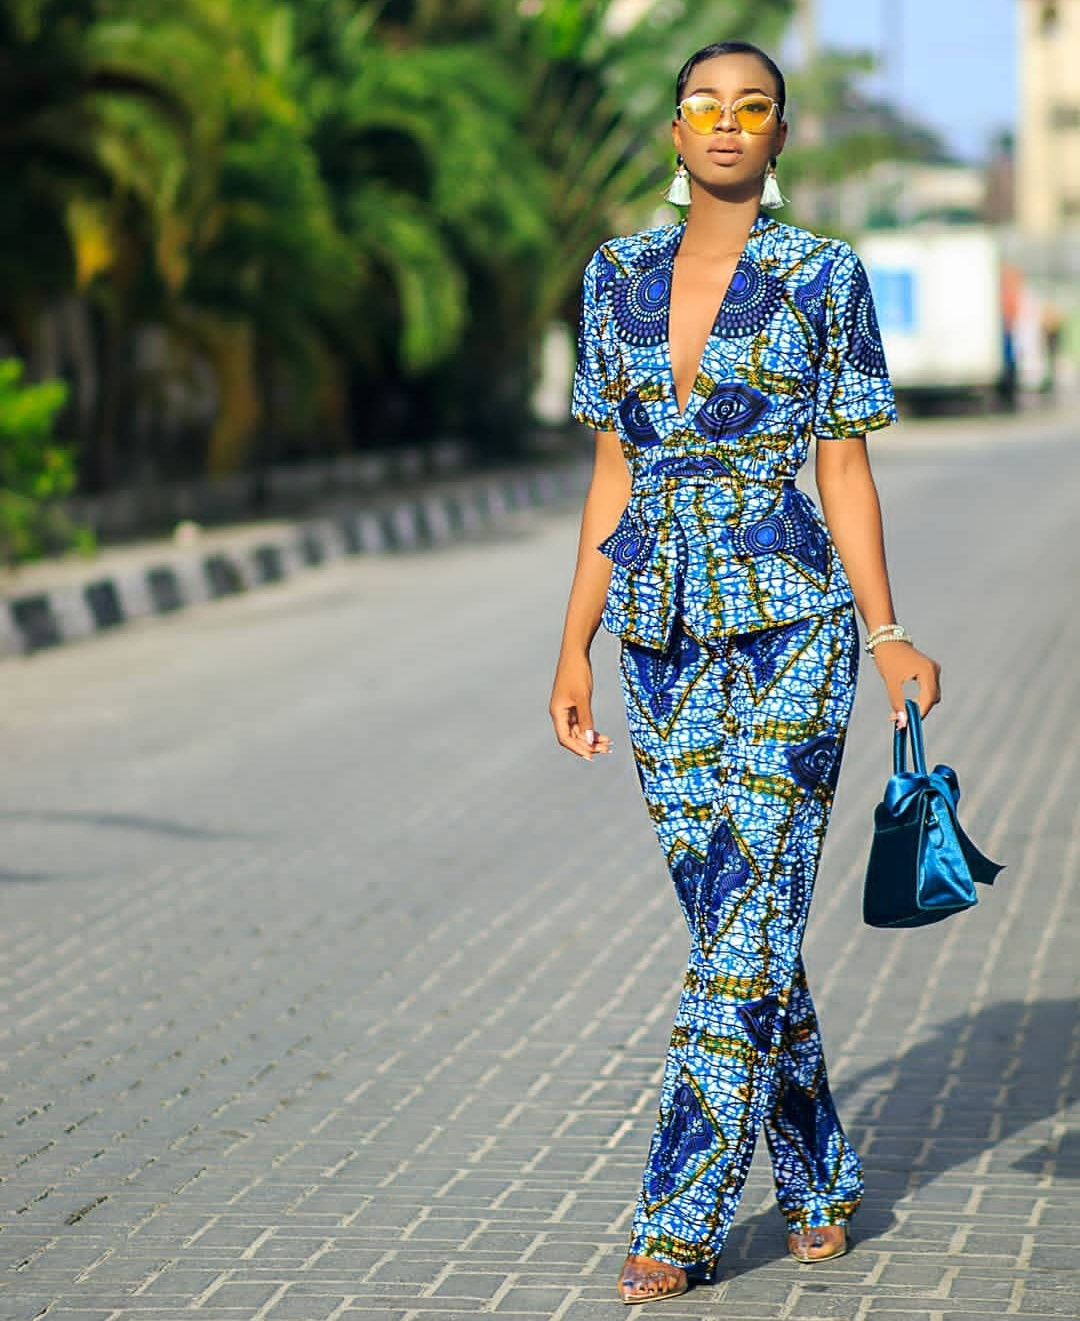 the-most-fashionable-looks-from-celebrities-fashion-women-around-the-world-week-of-may-25-2018